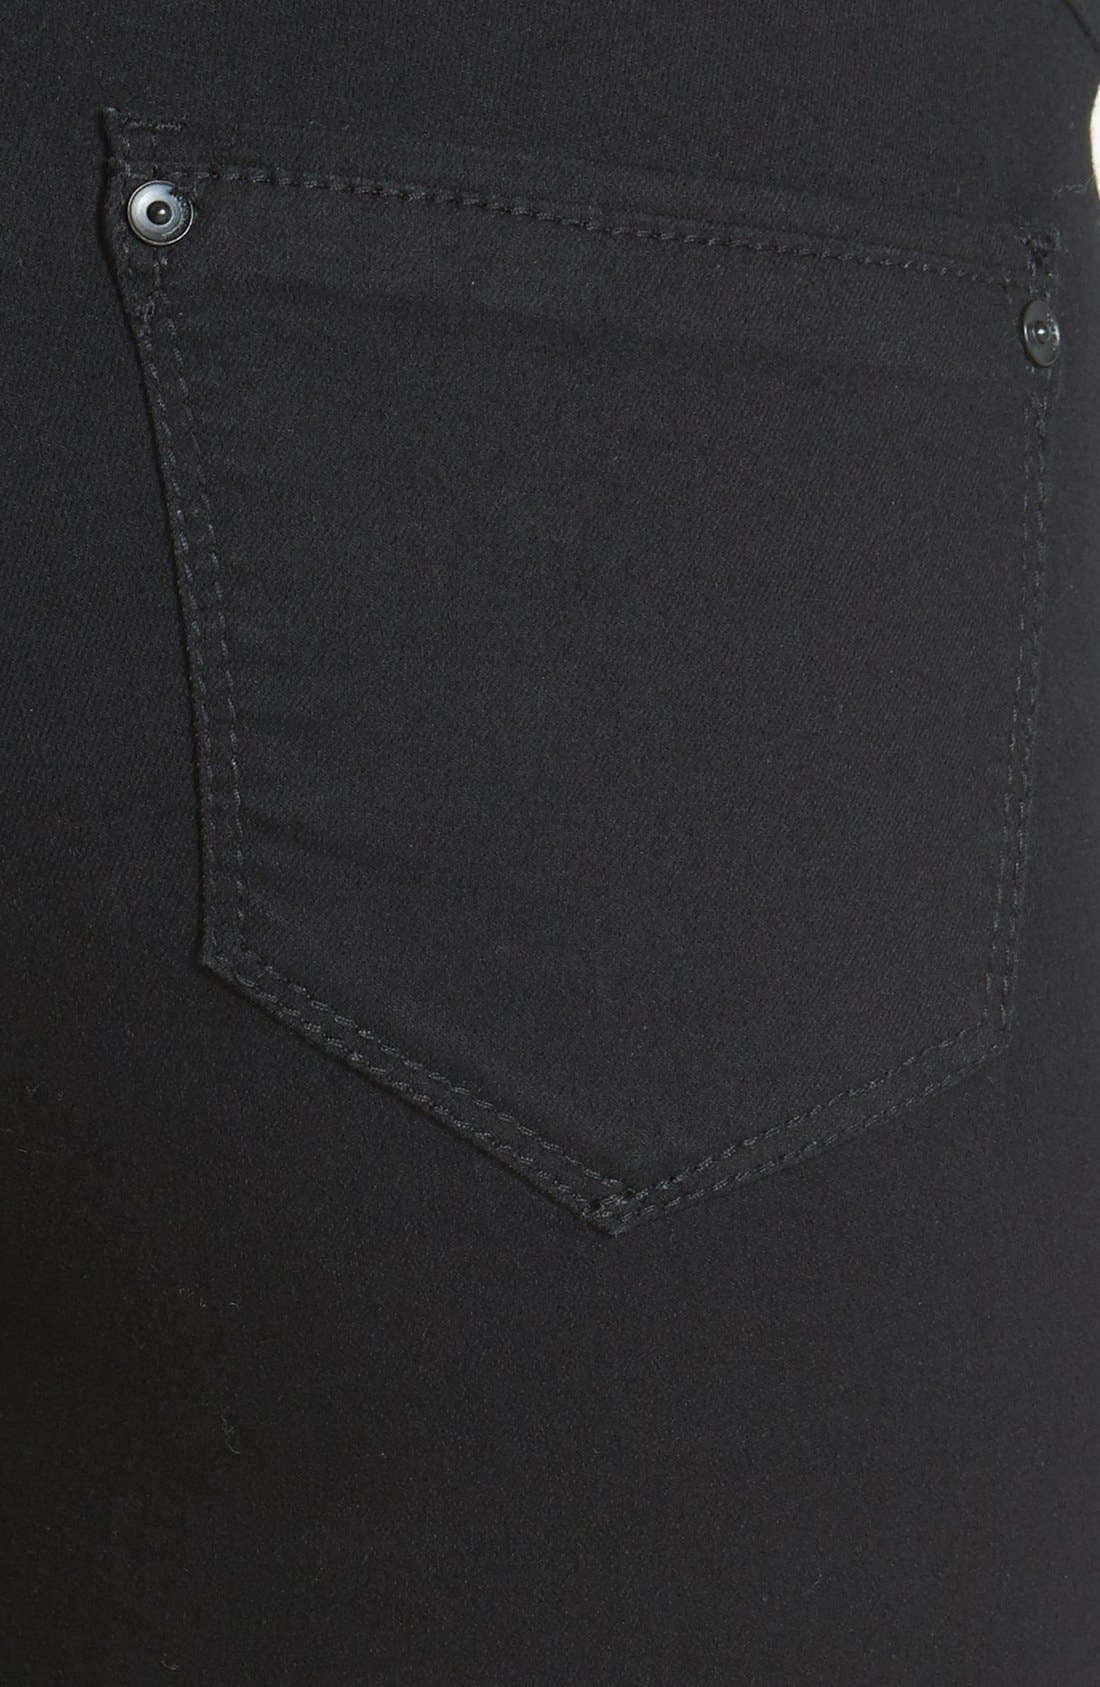 Lightweight Stretch Skinny Jeans,                             Alternate thumbnail 3, color,                             002